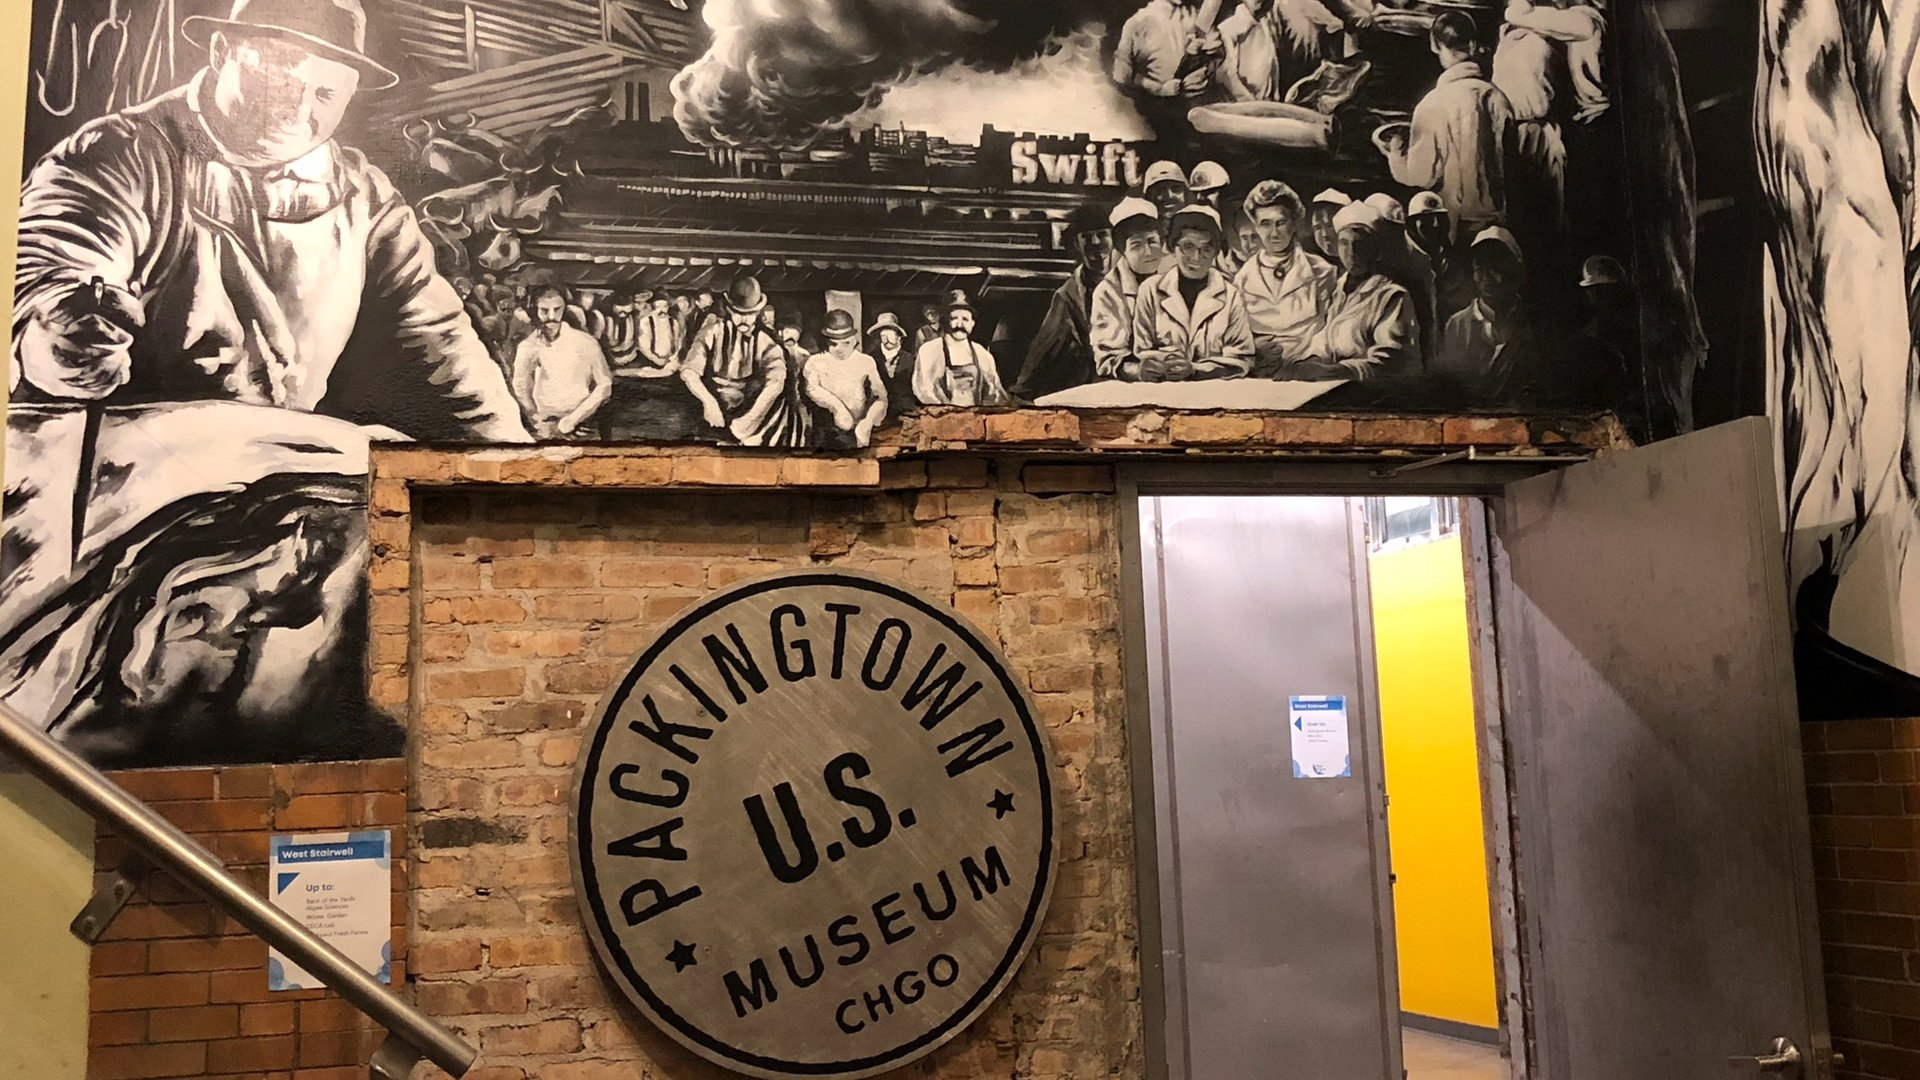 The Packingtown Museum's opening at The Plant is now on hold. (Patty Wetli / WTTW News)